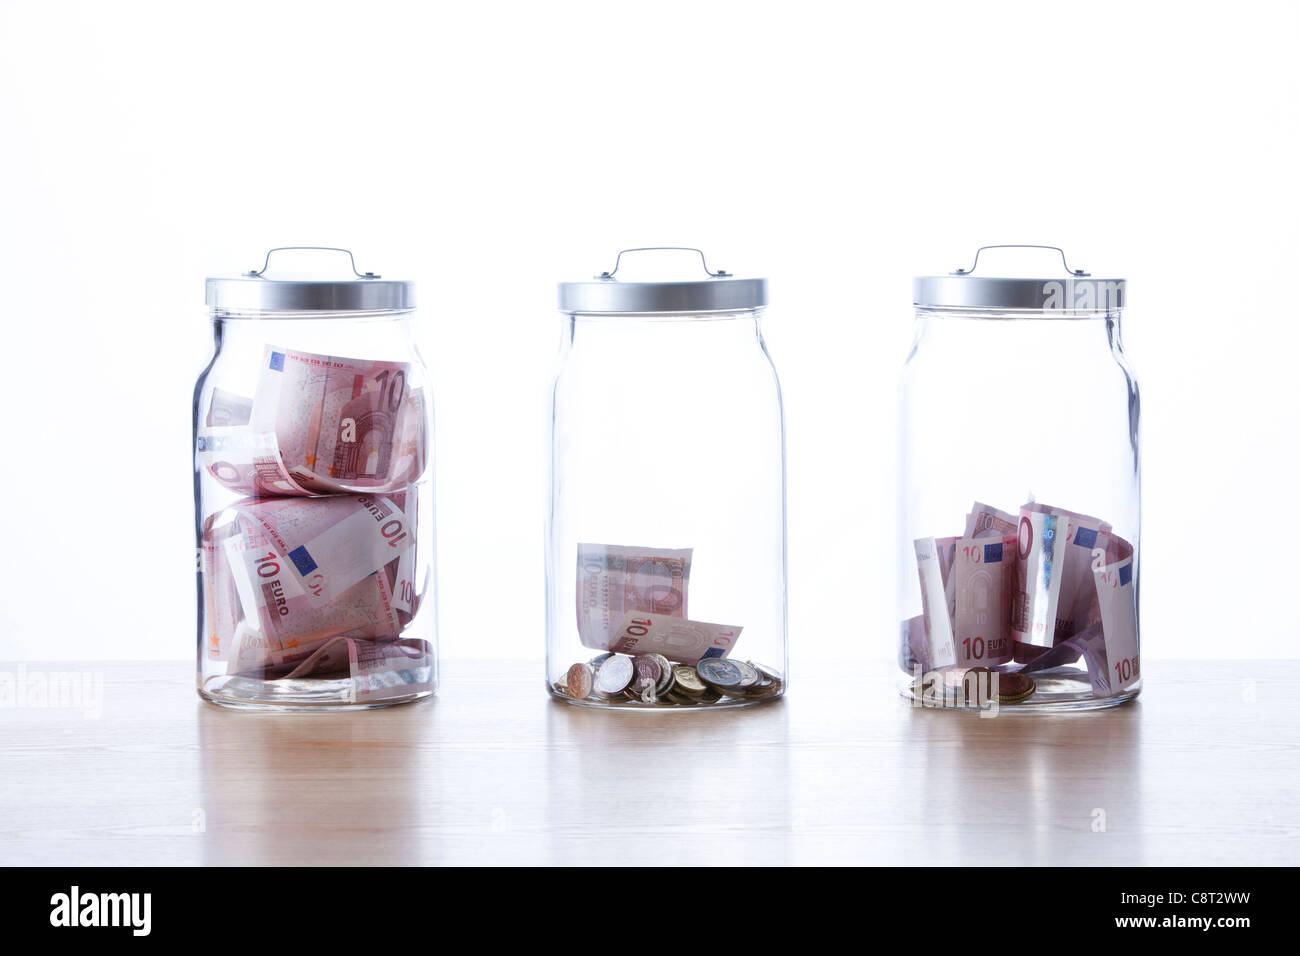 Three glass jars filled with European union currency against white background - Stock Image